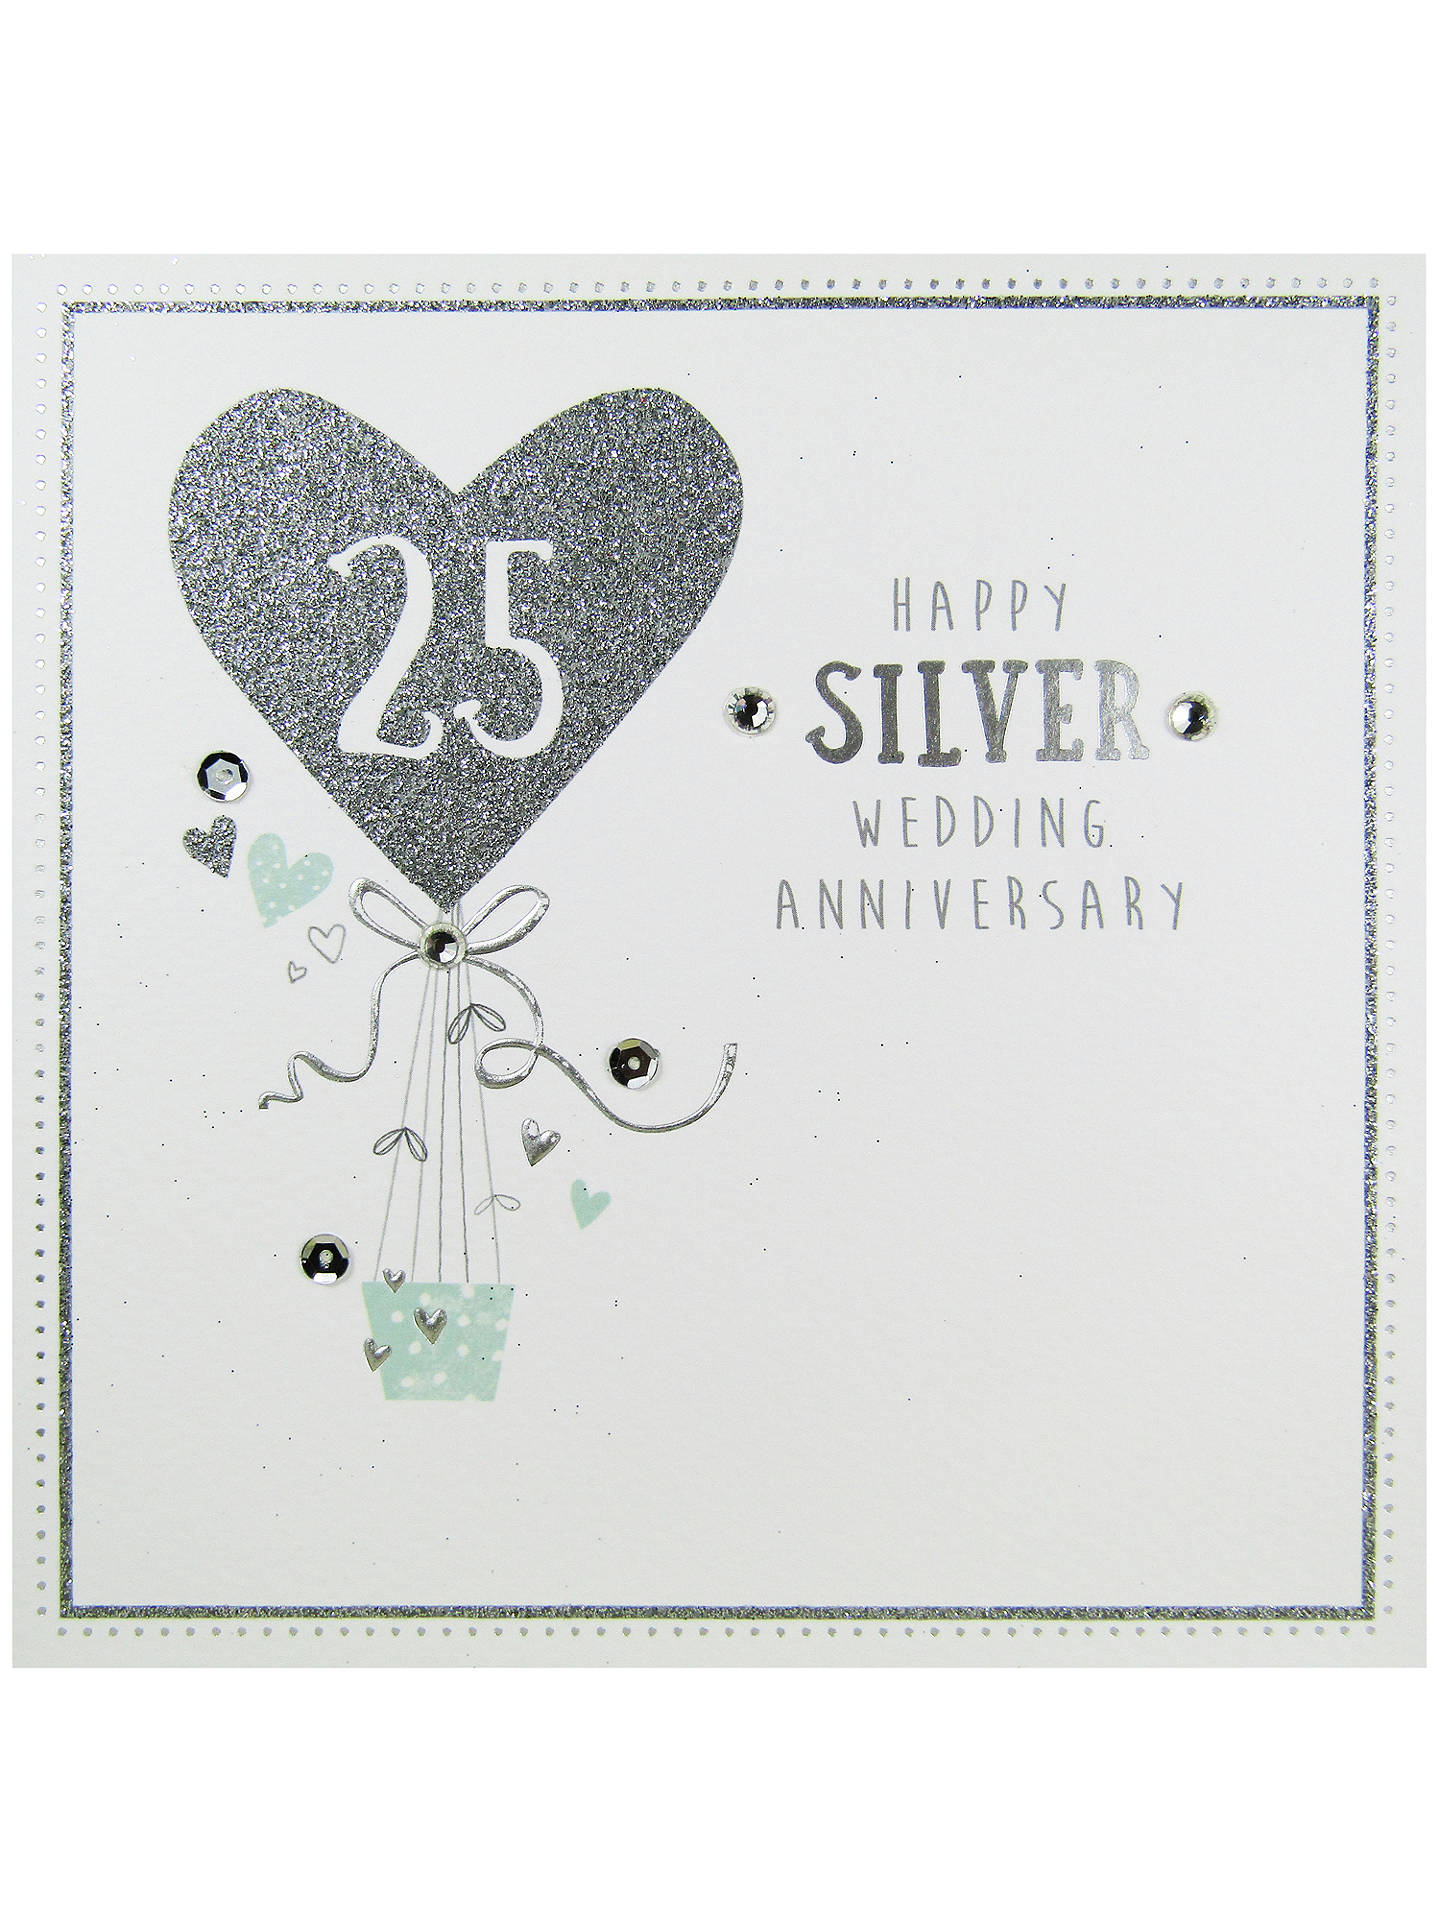 Carte blanche silver anniversary greeting card at john lewis partners buycarte blanche silver anniversary greeting card online at johnlewis m4hsunfo